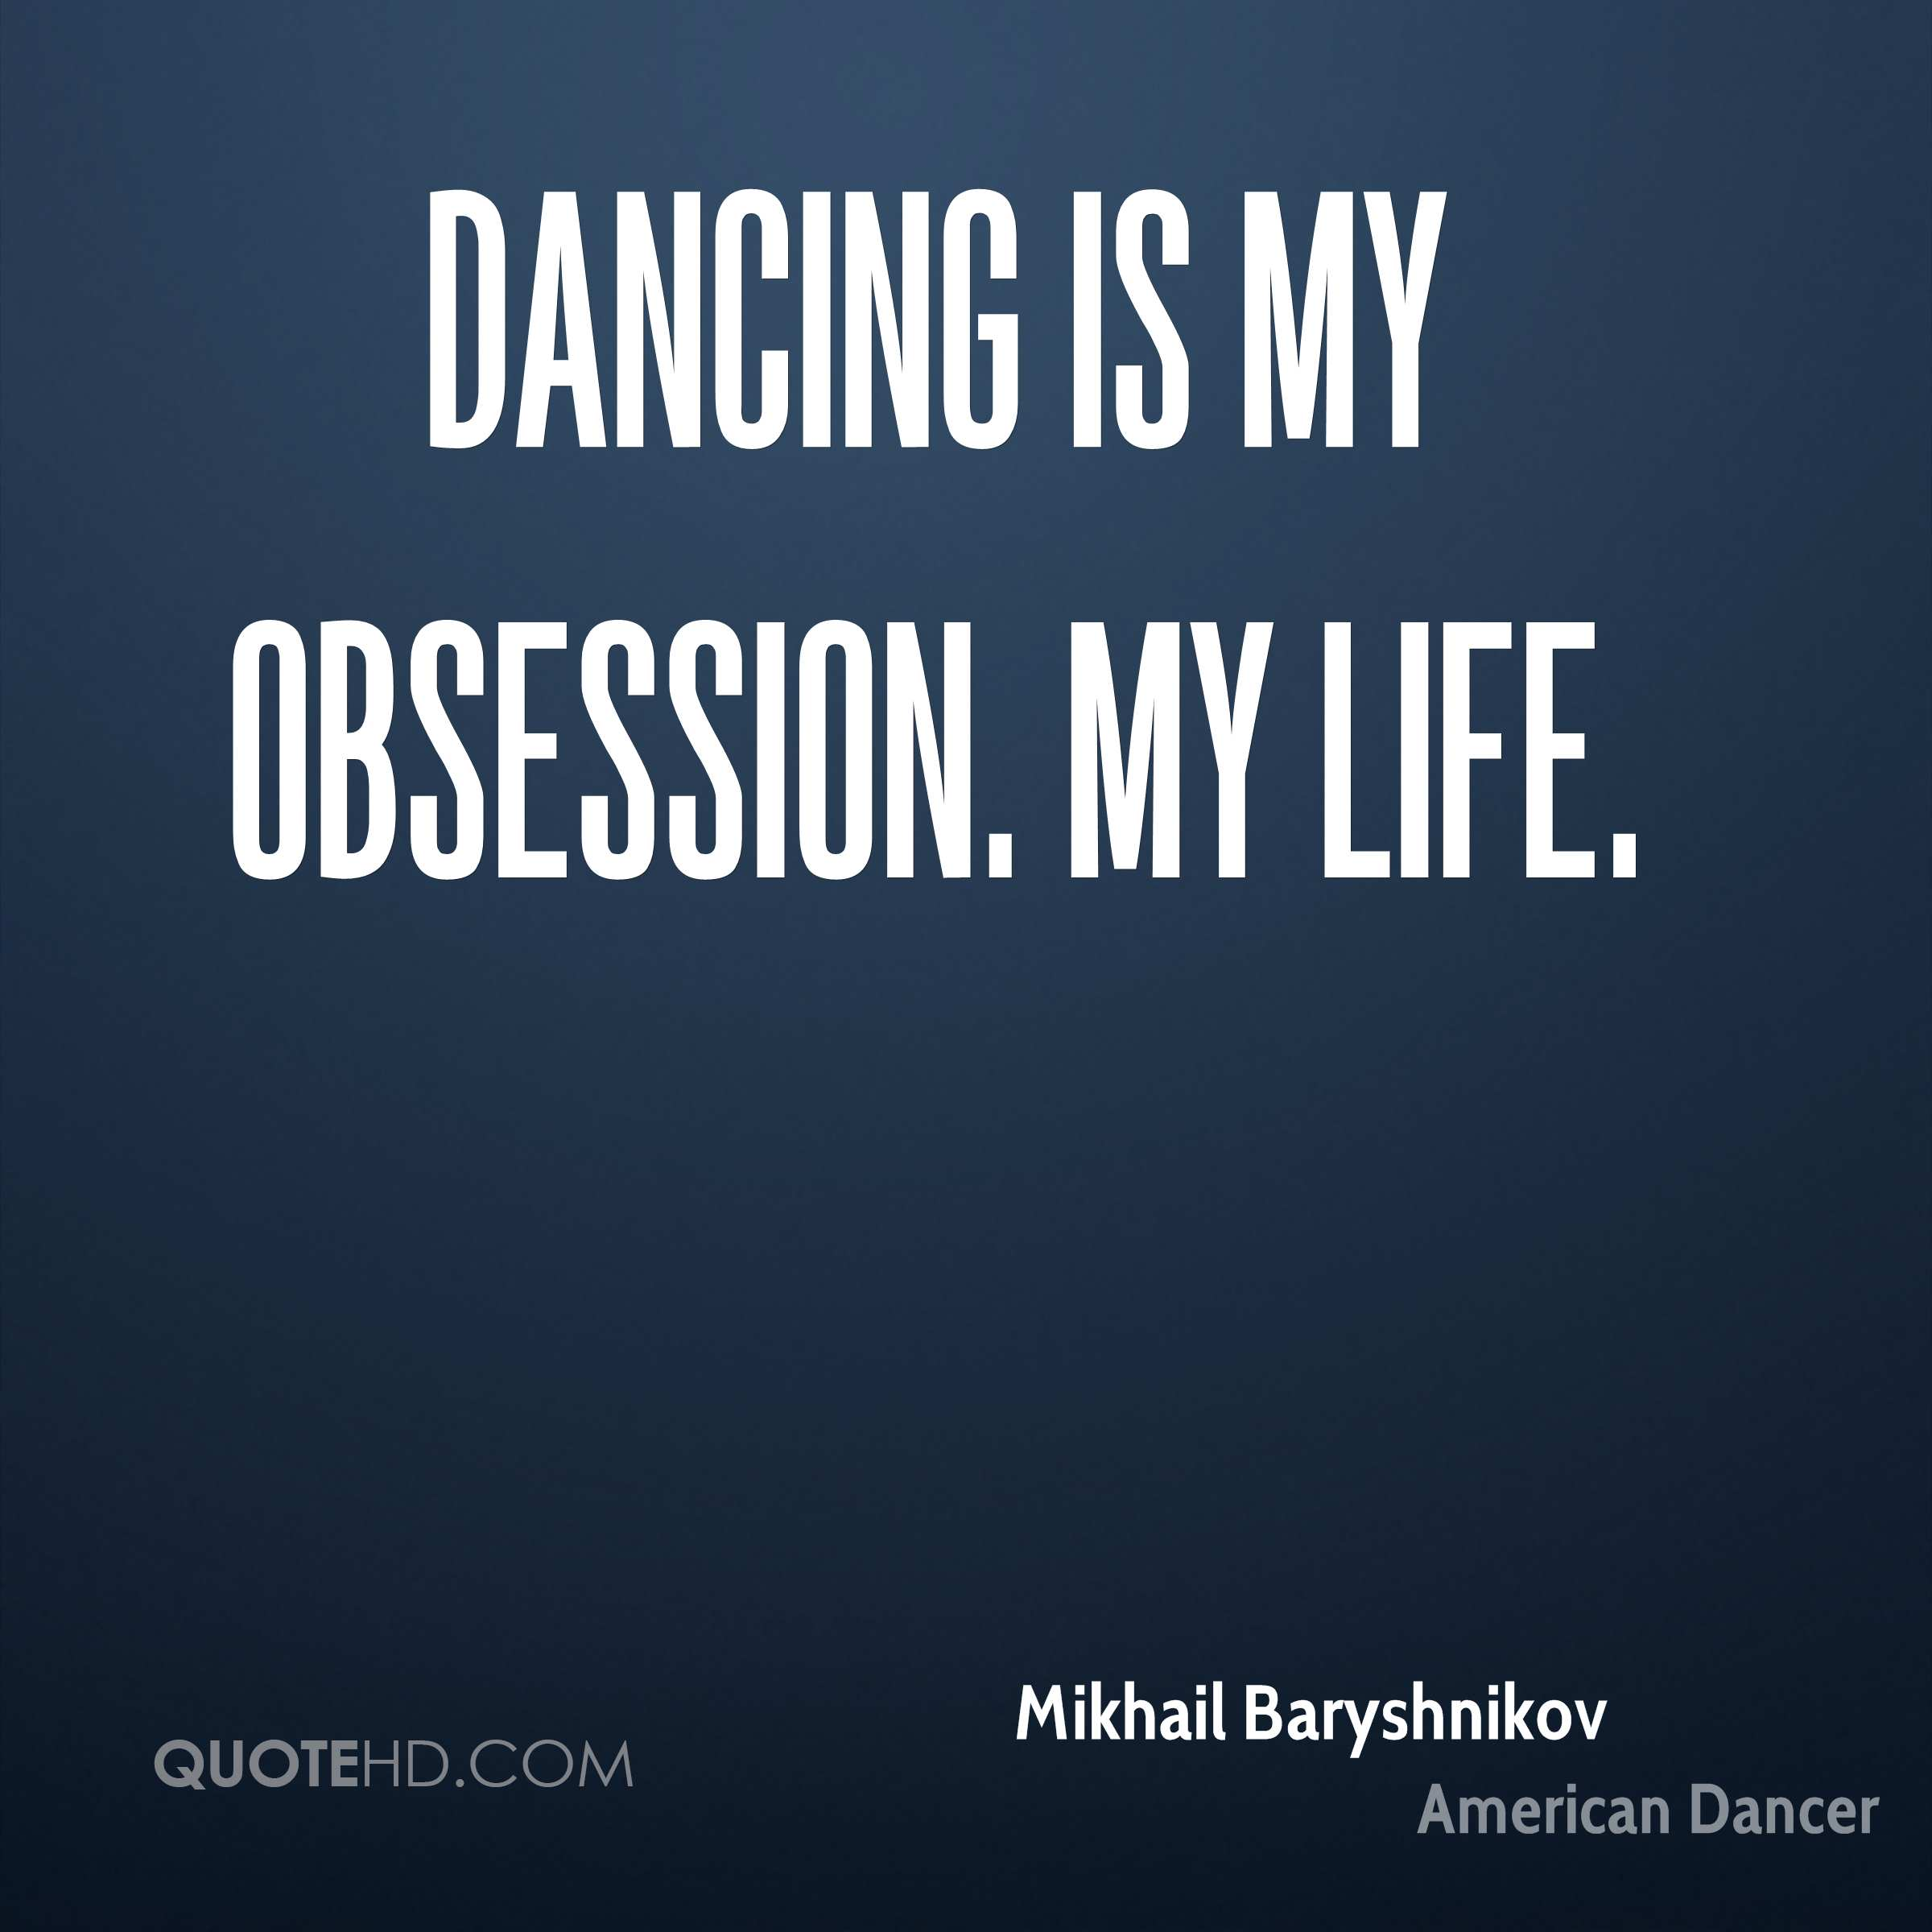 Dancing is my obsession. My life.